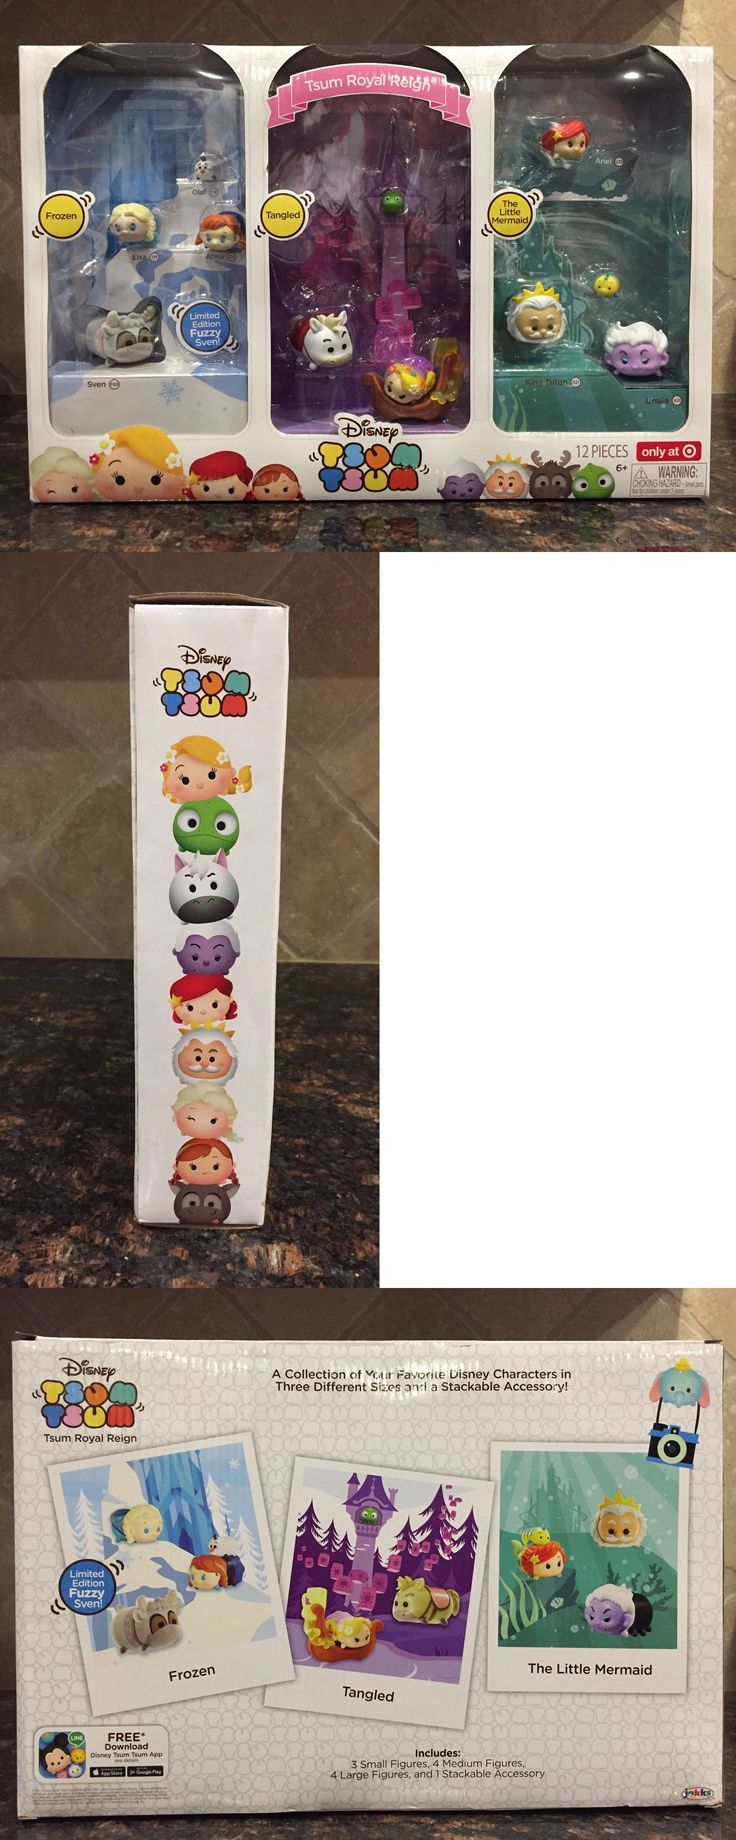 Other Disney Toys 19224: *Target Exclusive* Tsum Royal Reign Tsum Tsum Frozen Rapunzel Little Mermaid -> BUY IT NOW ONLY: $58 on eBay!